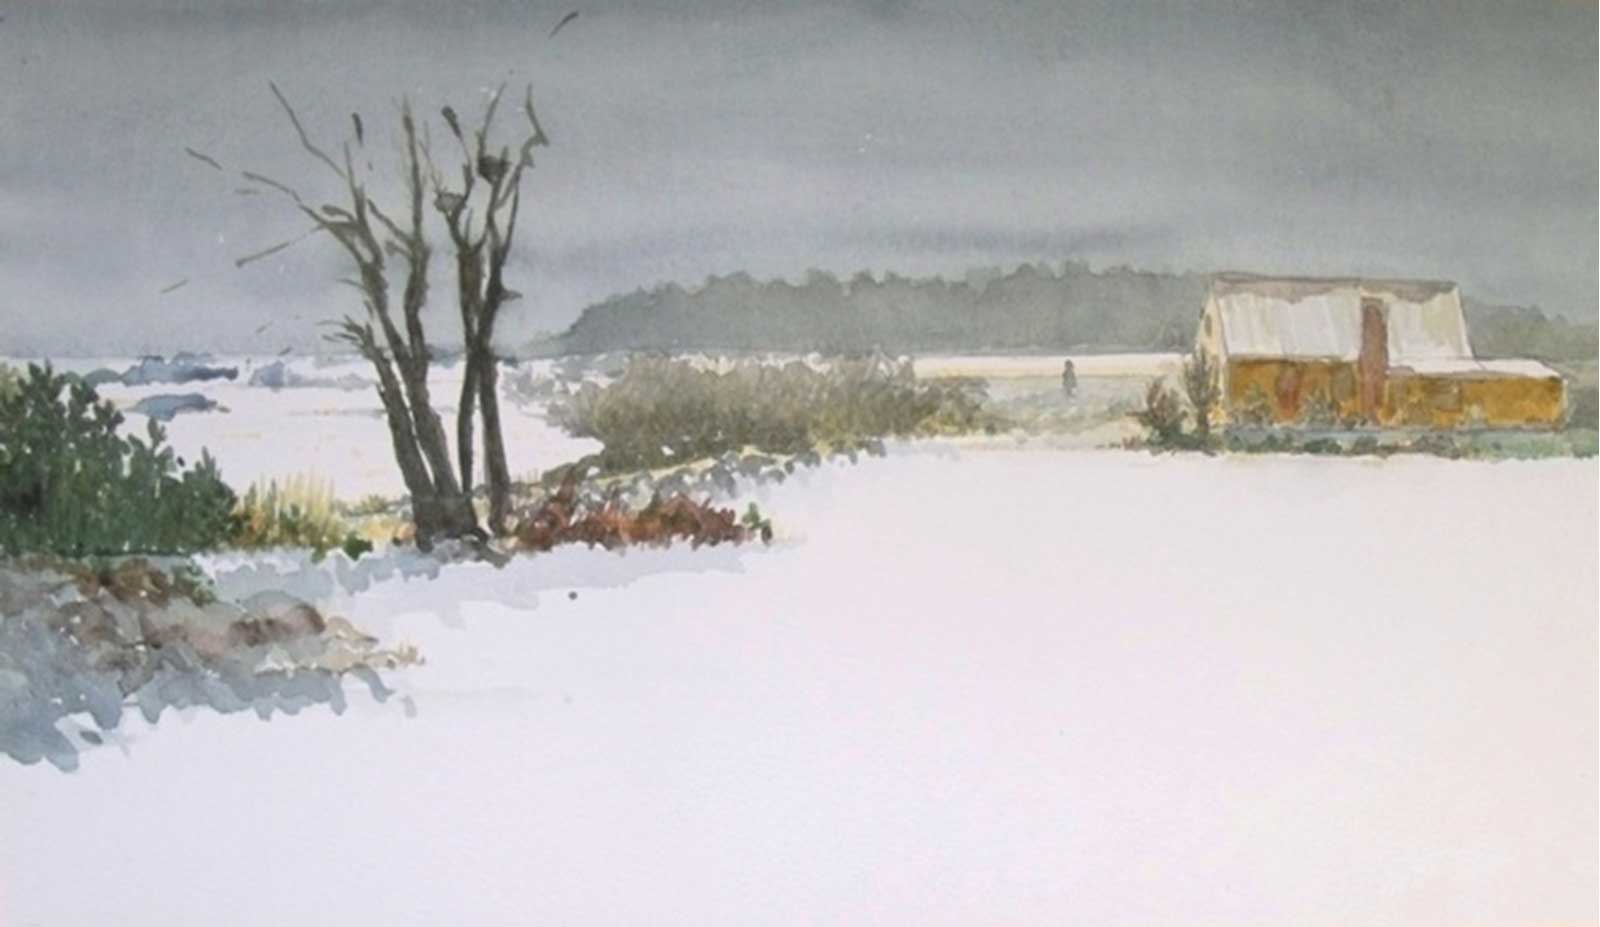 Talusman Fine Art Jane Wisner - 'The Snow'